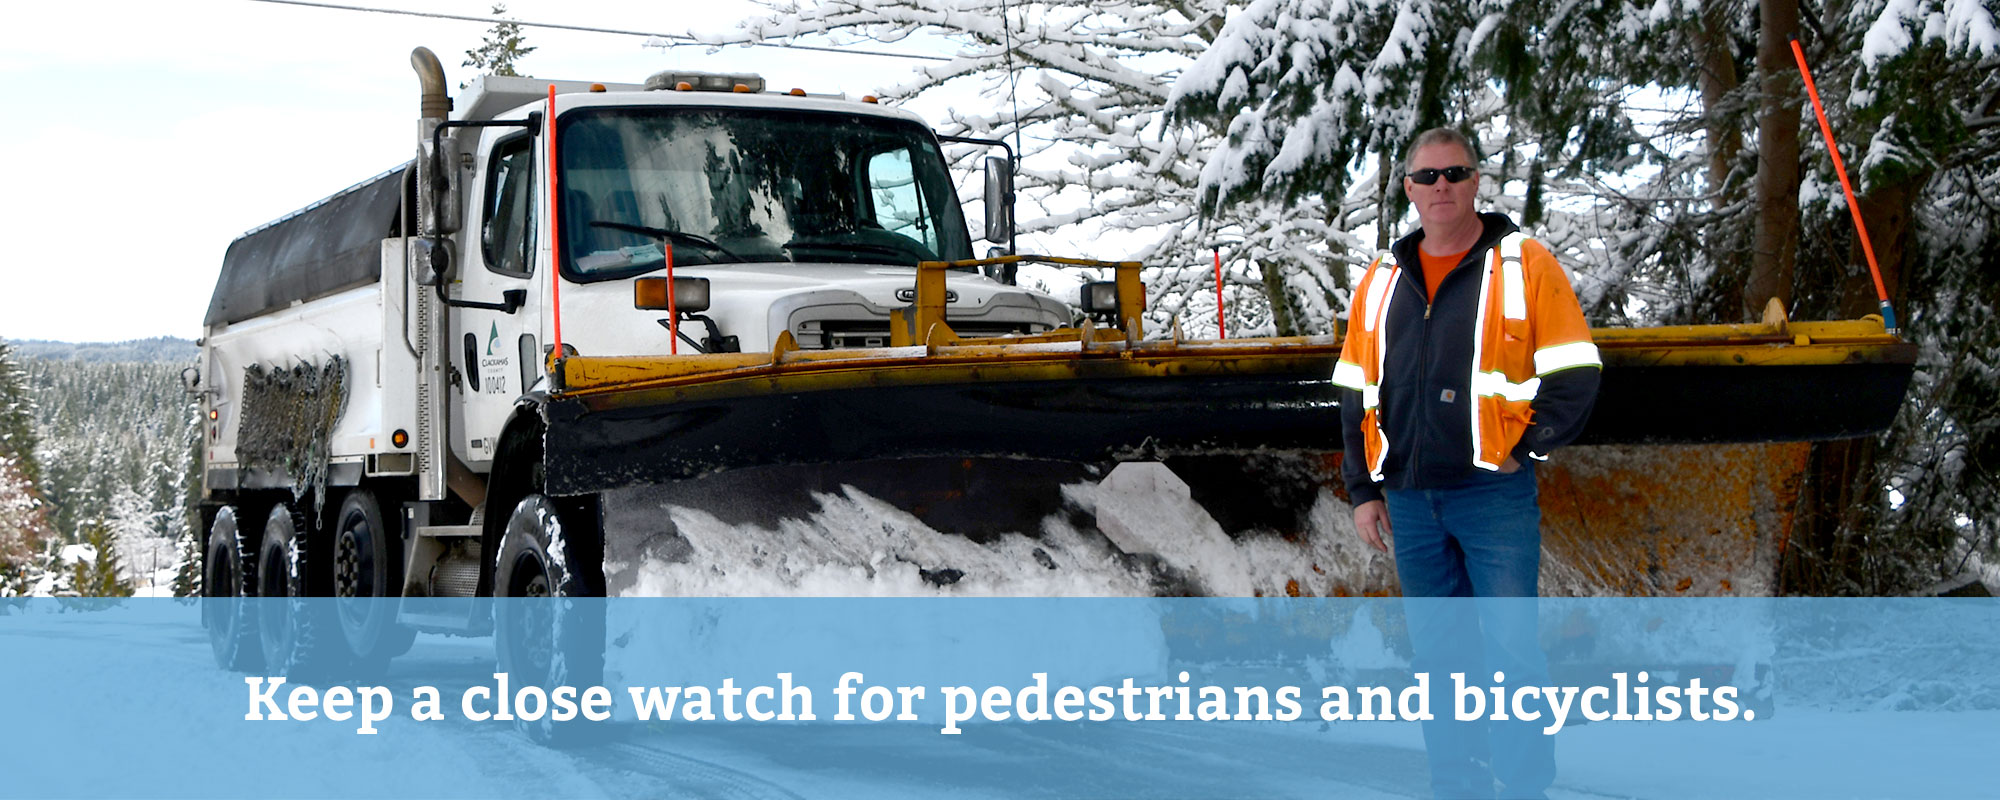 Keep a close watch for pedestrians and bicyclists.